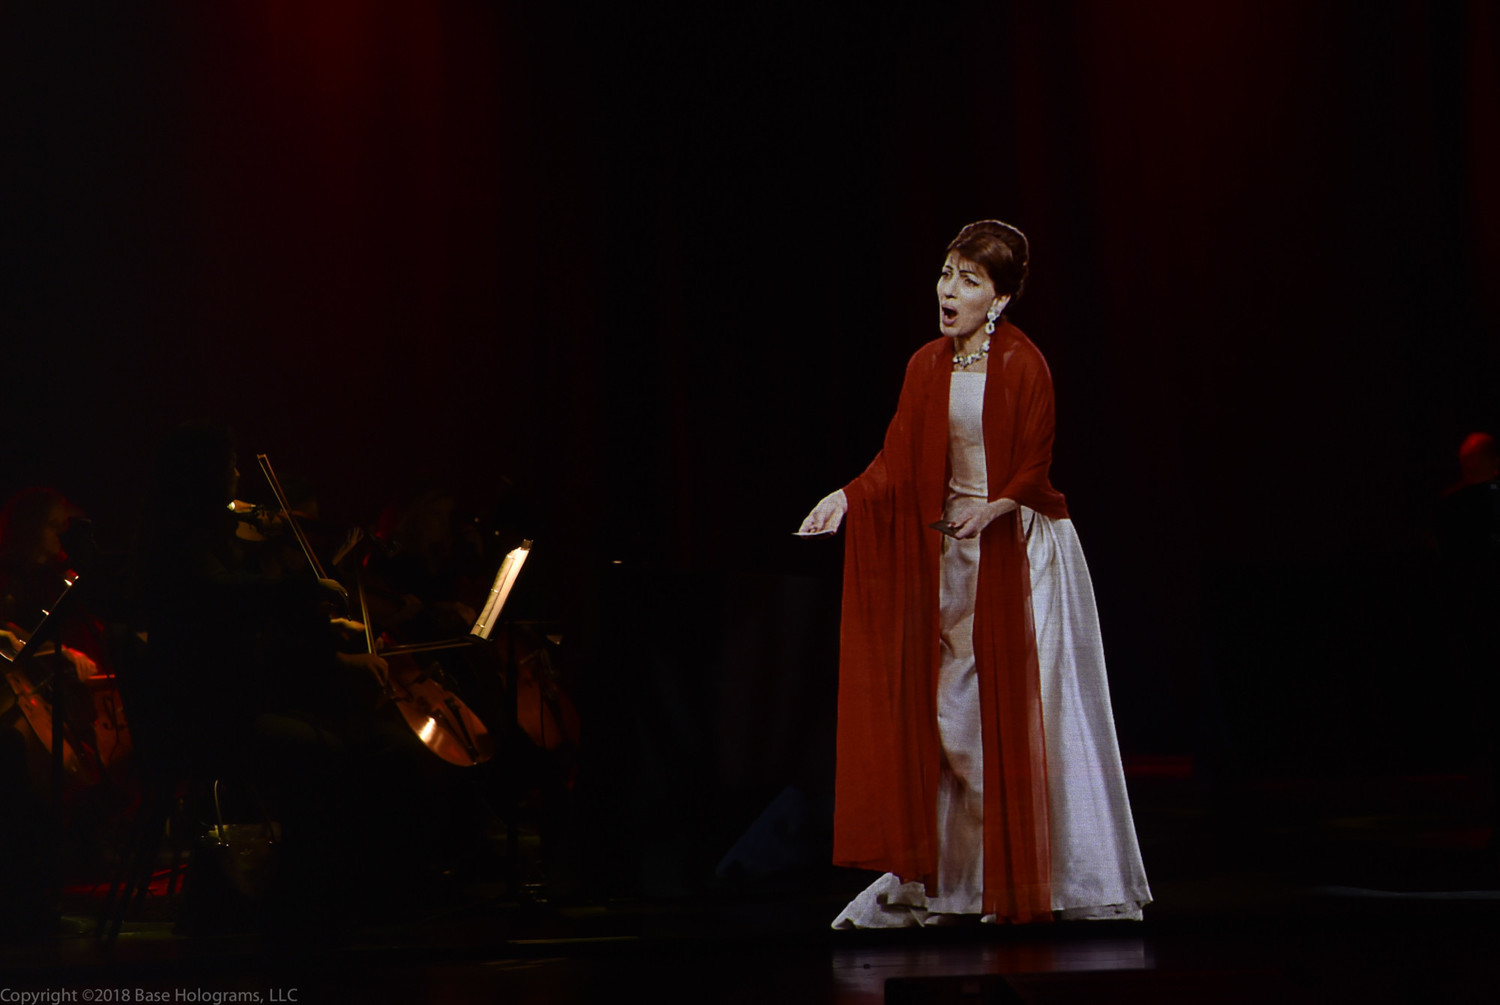 BWW Review: CALLAS IN CONCERT at University of Southern California's  Bovard Auditorium